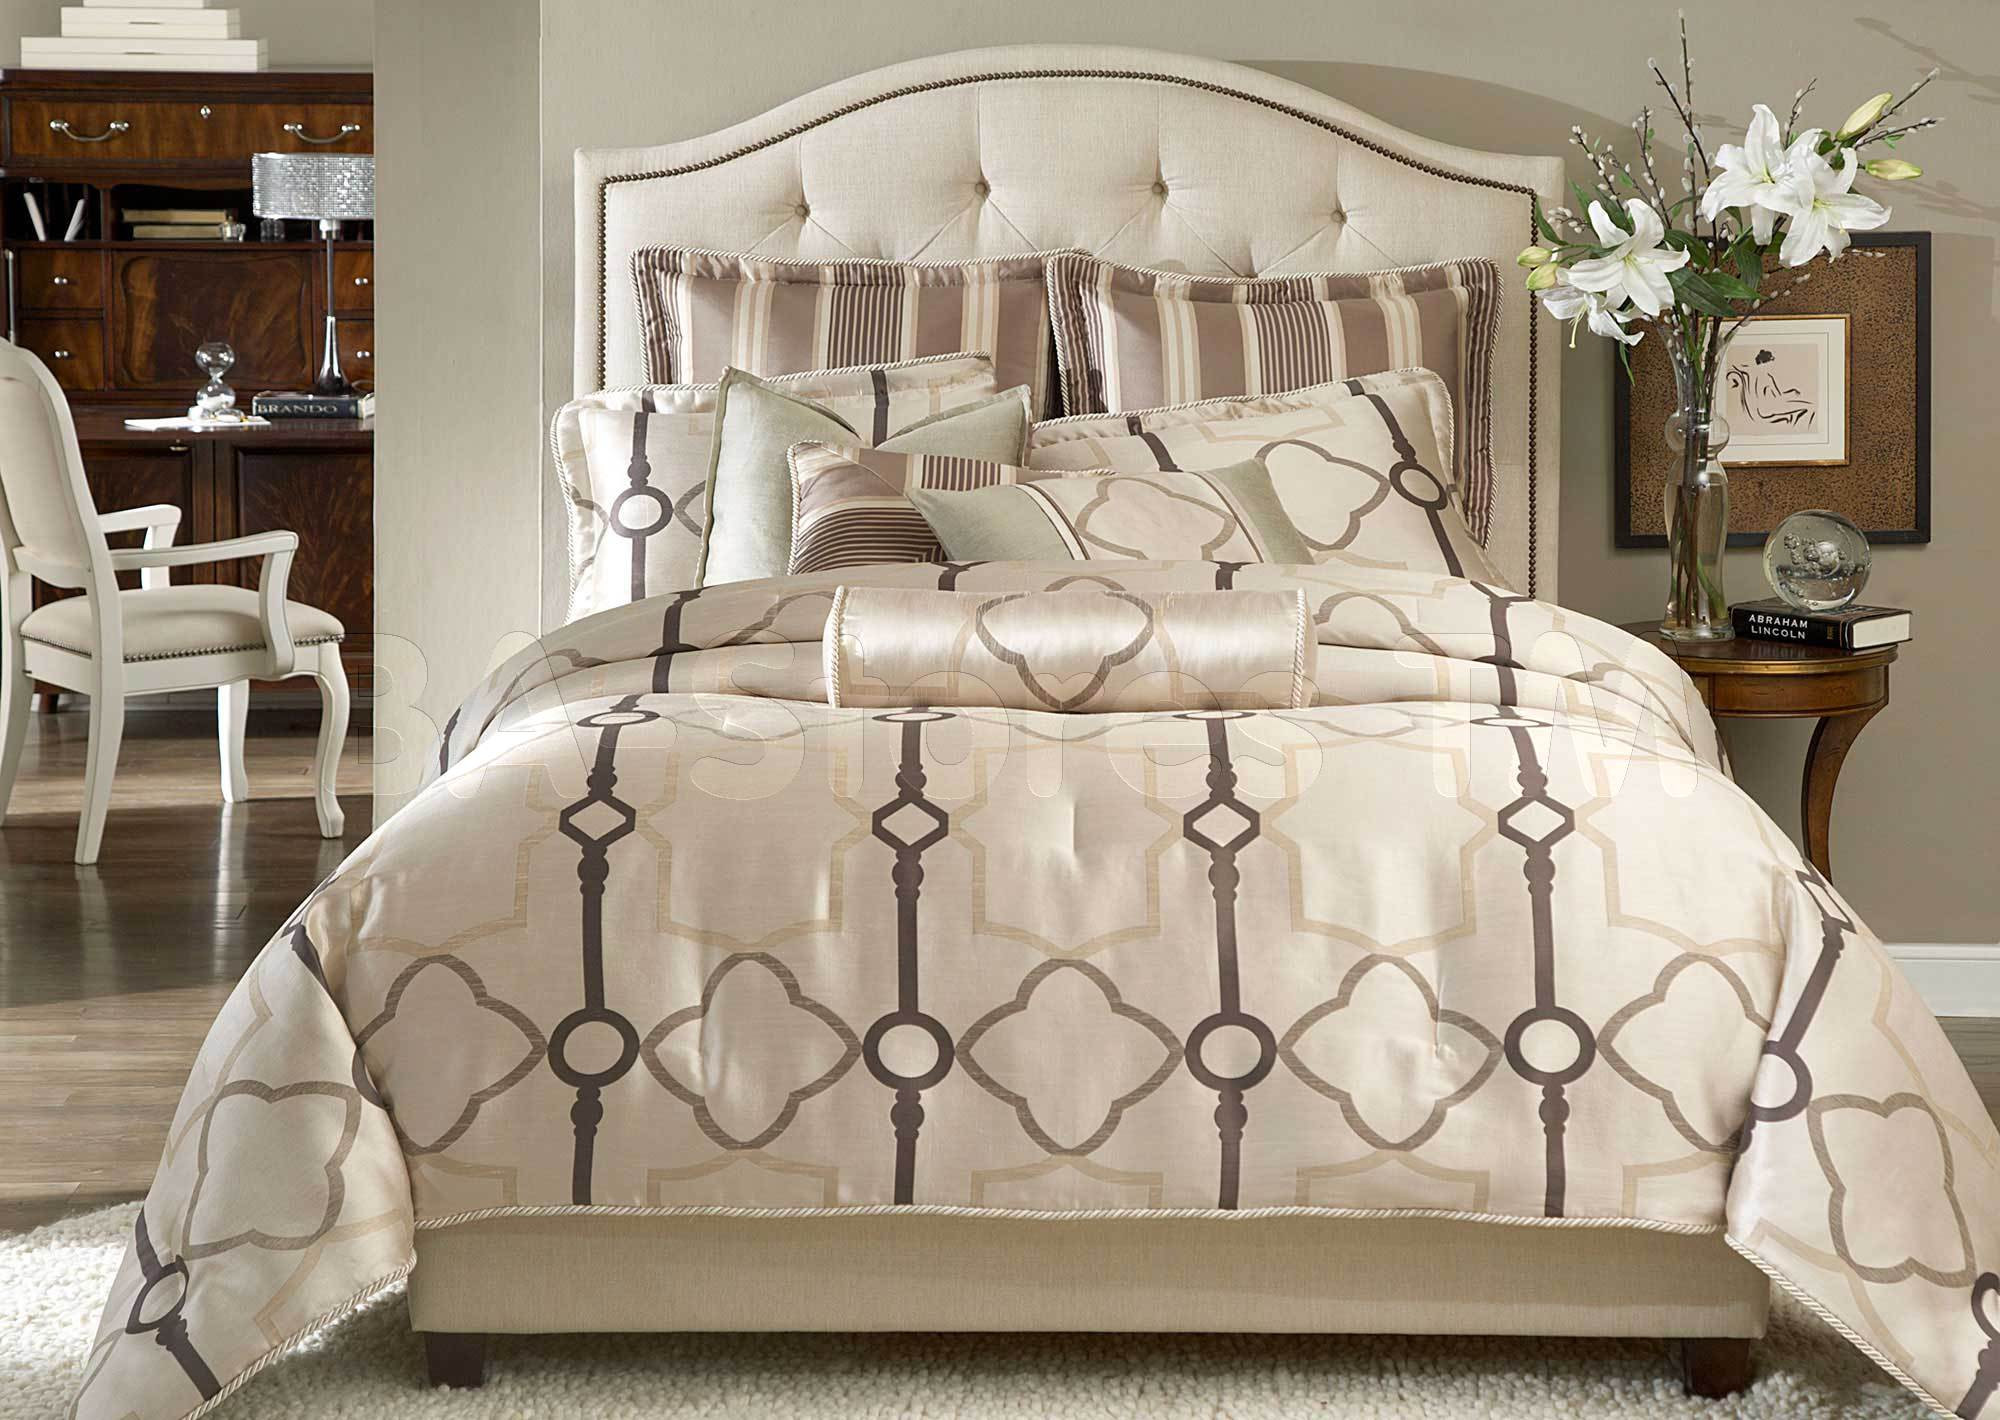 Best ideas about Queen Bedroom Sets . Save or Pin cheap queen bedroom set Now.